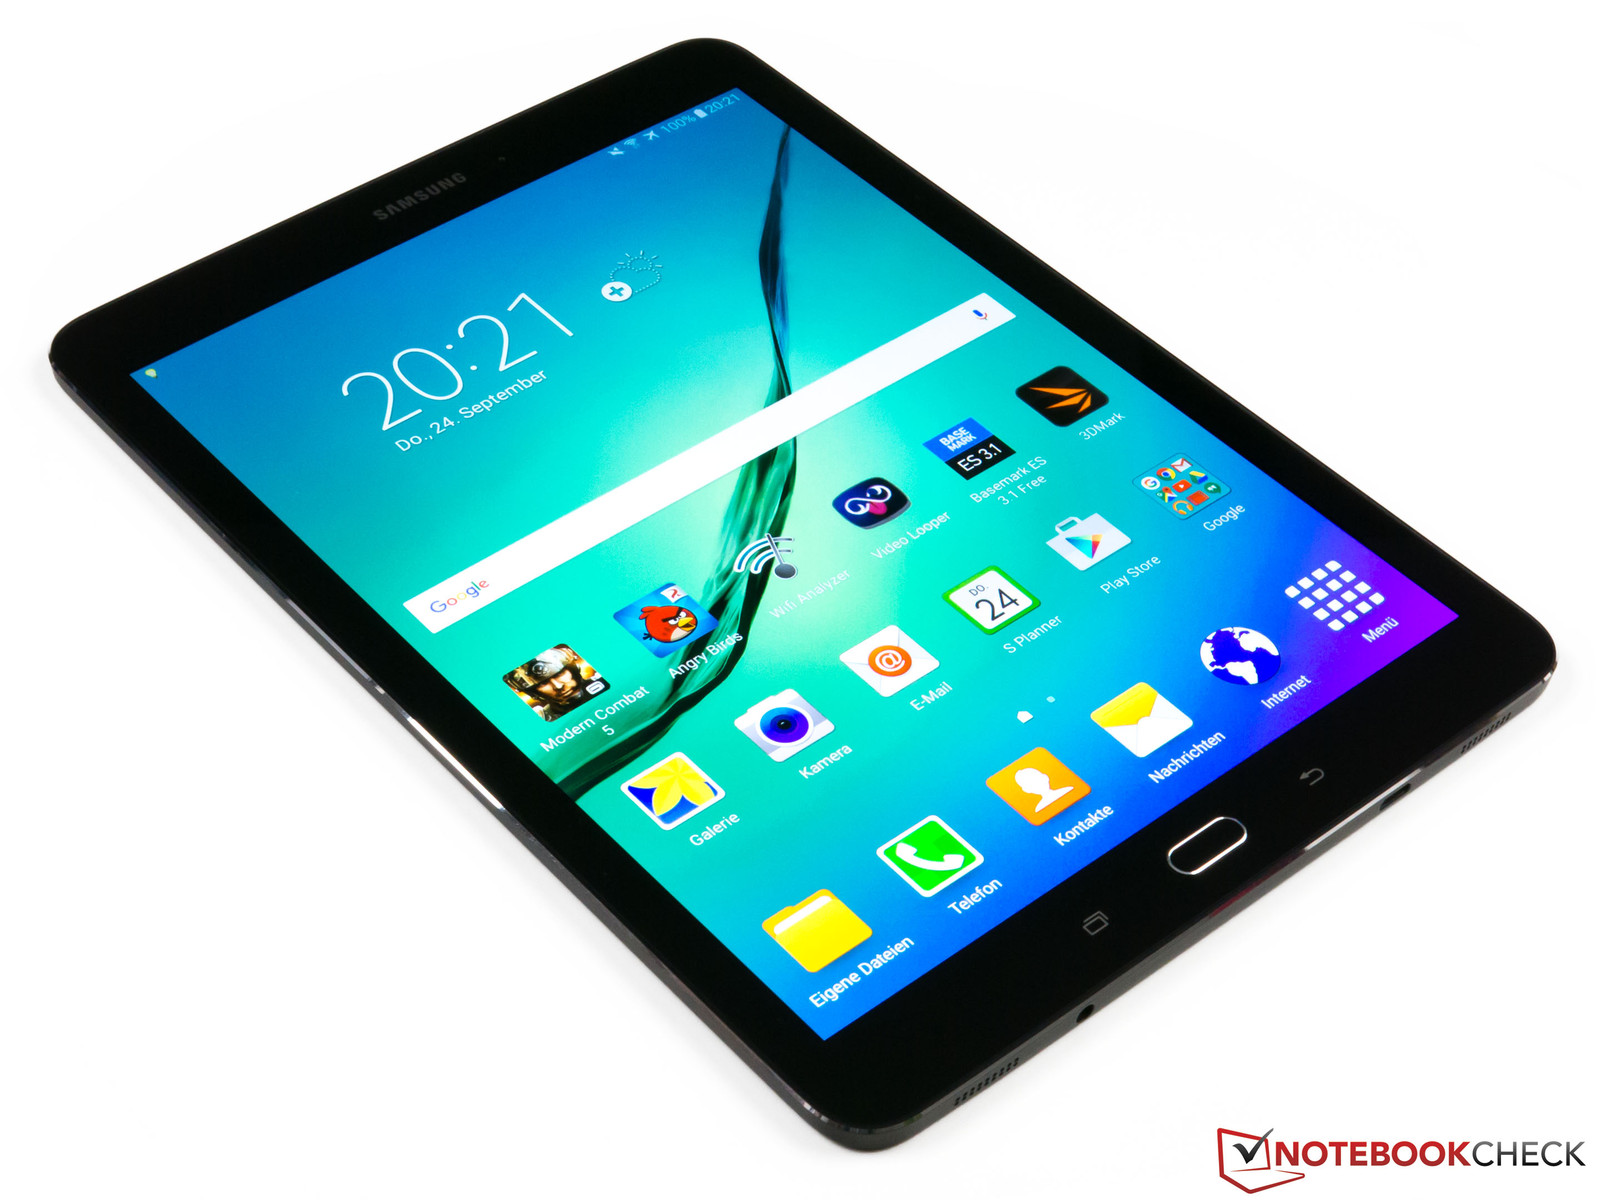 samsung temporarily cuts galaxy tab s2 prices by 100 euros news. Black Bedroom Furniture Sets. Home Design Ideas